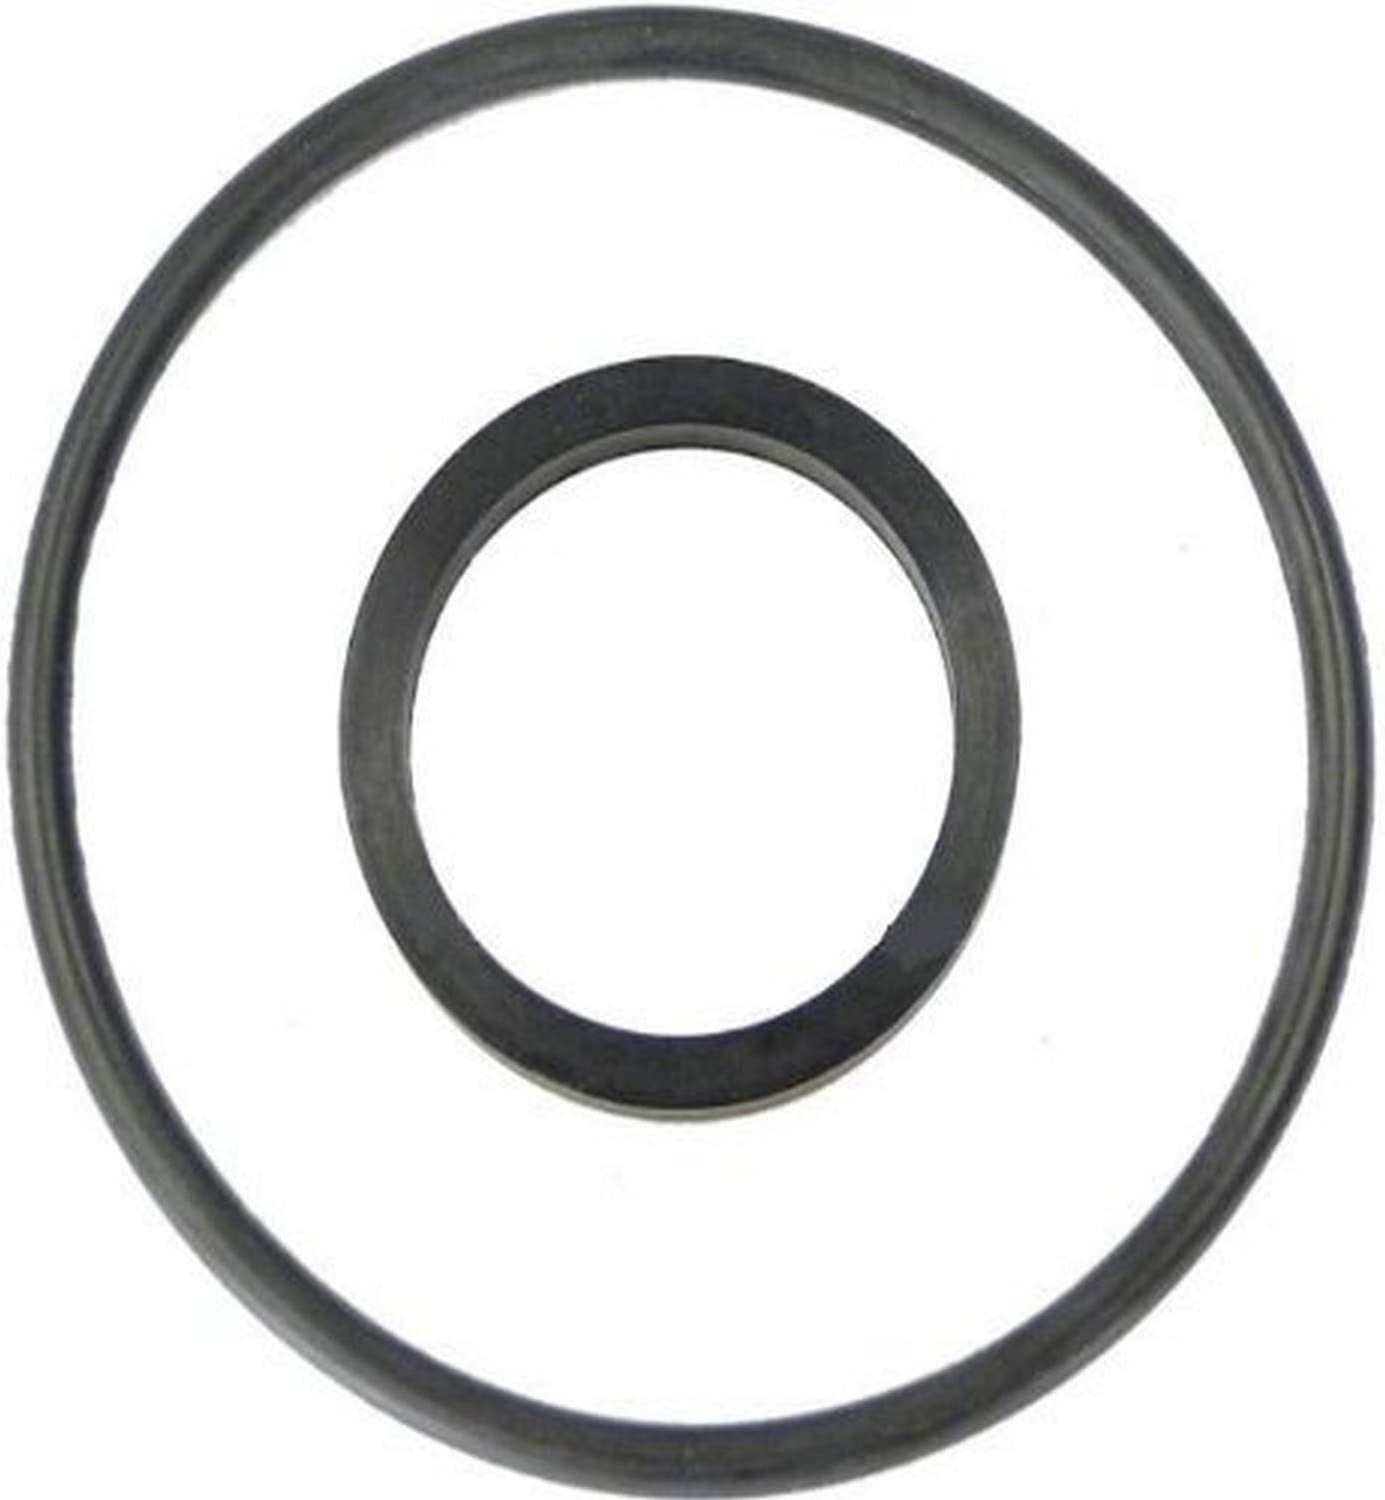 Hayward CCX1000Z5 O-Ring Replacement for Hayward Xstream Filtration Series CC10092S and CC15093S, Set of 2